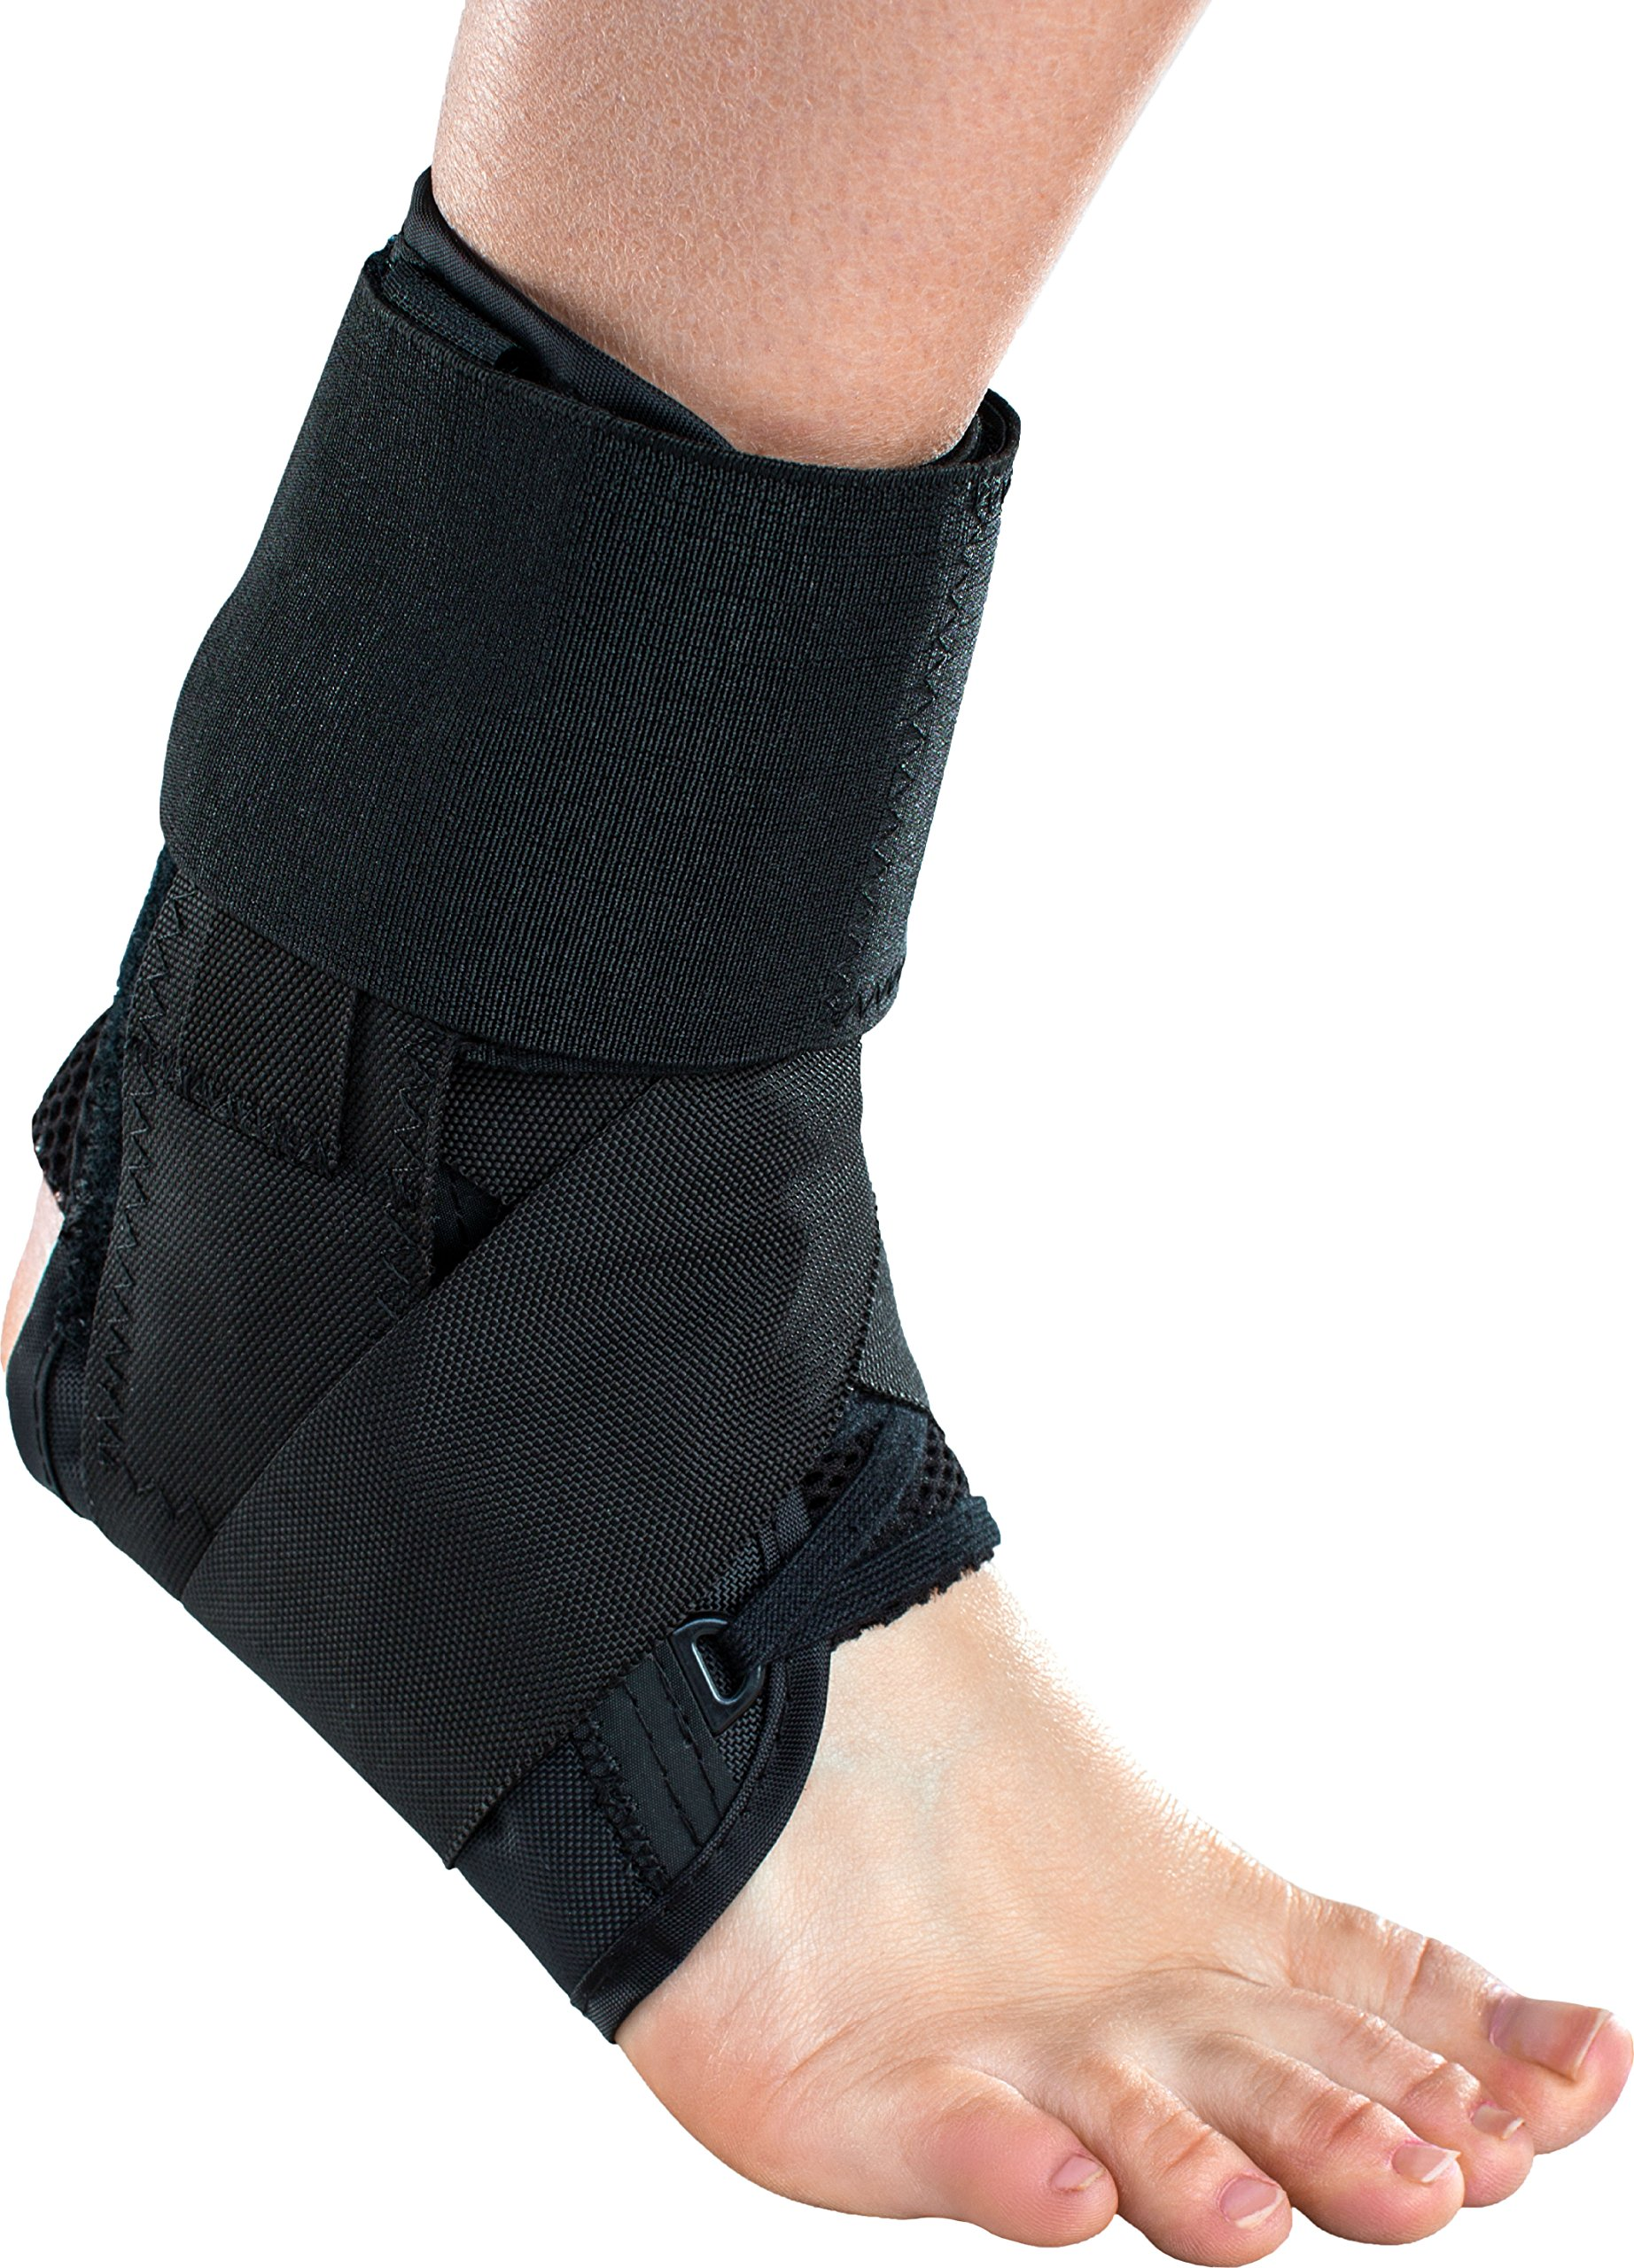 DonJoy Stabilizing Speed Pro Ankle Support Brace, Medium